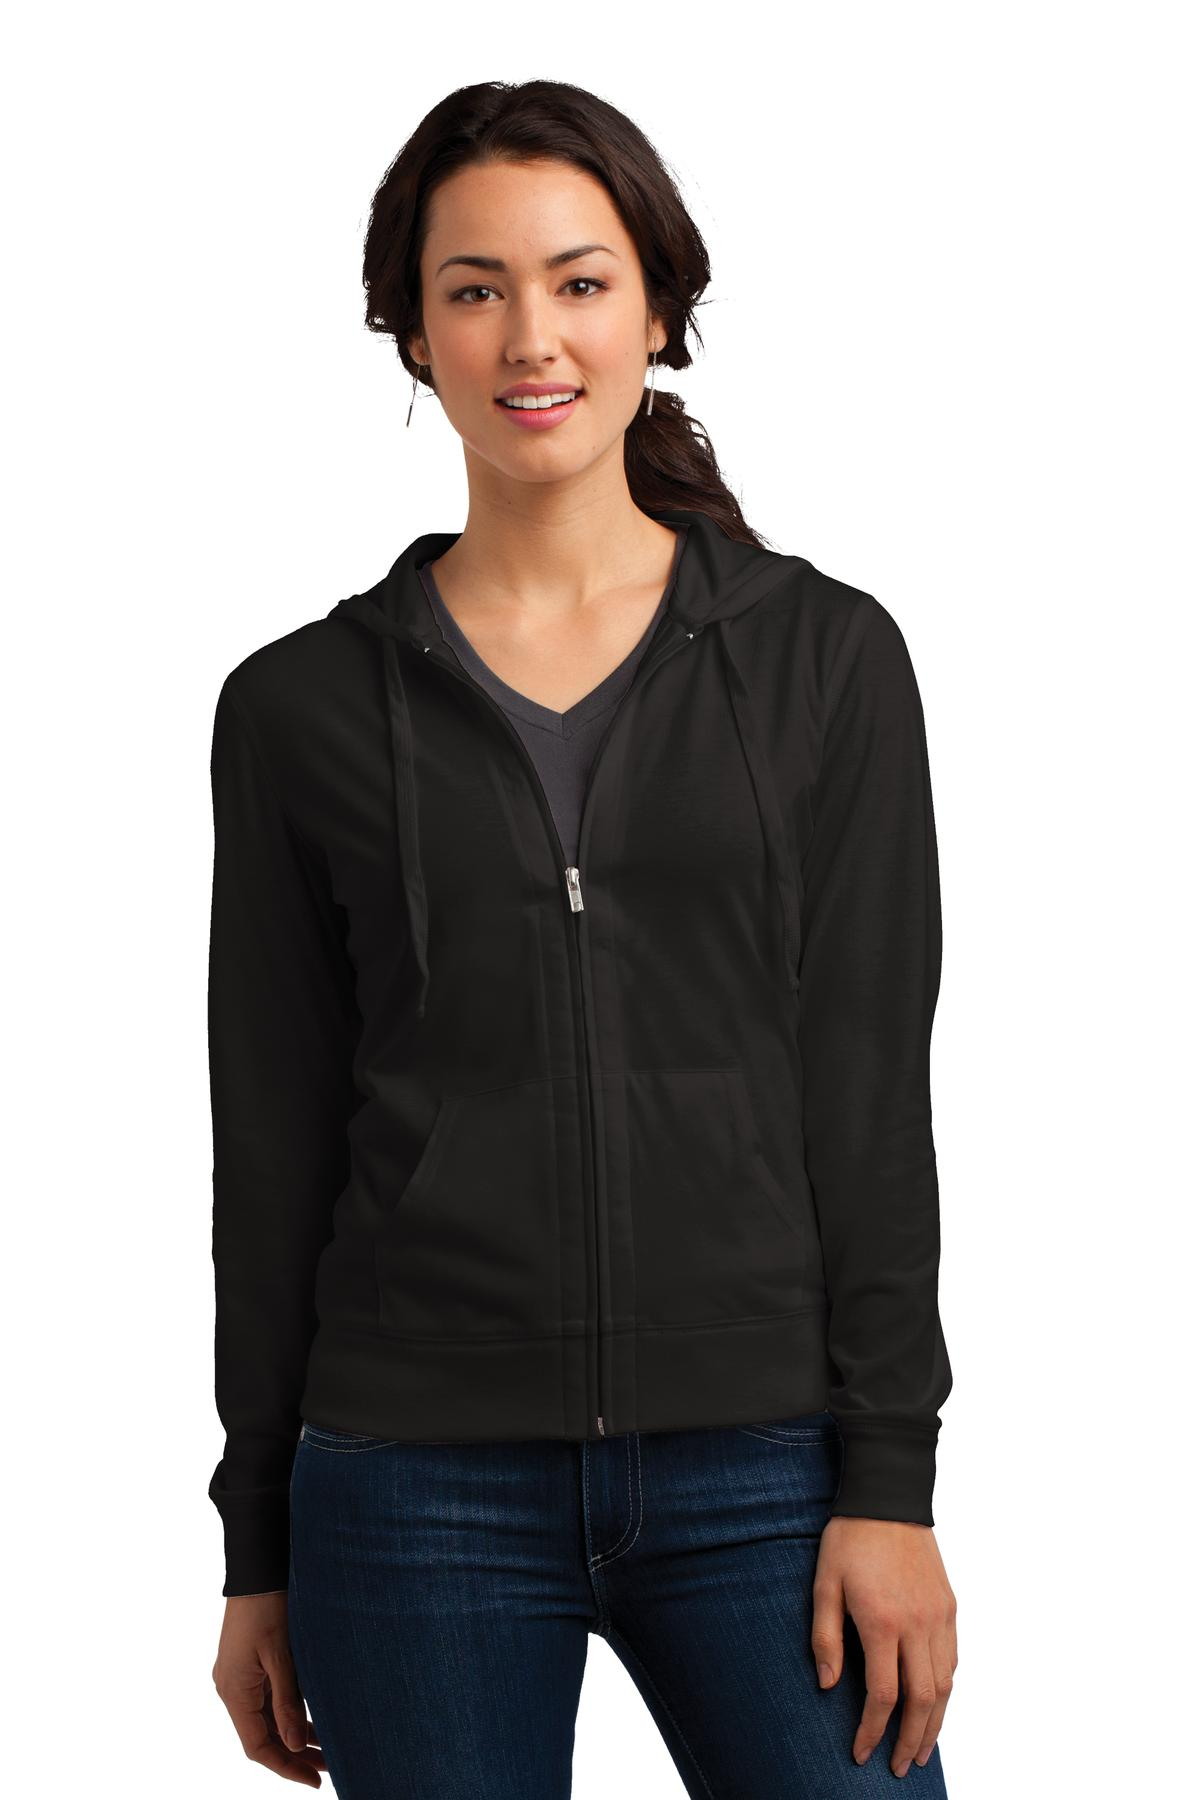 District DT2100 Women's Fitted Jersey Full-Zip Hoodie - Black - HIT A Double